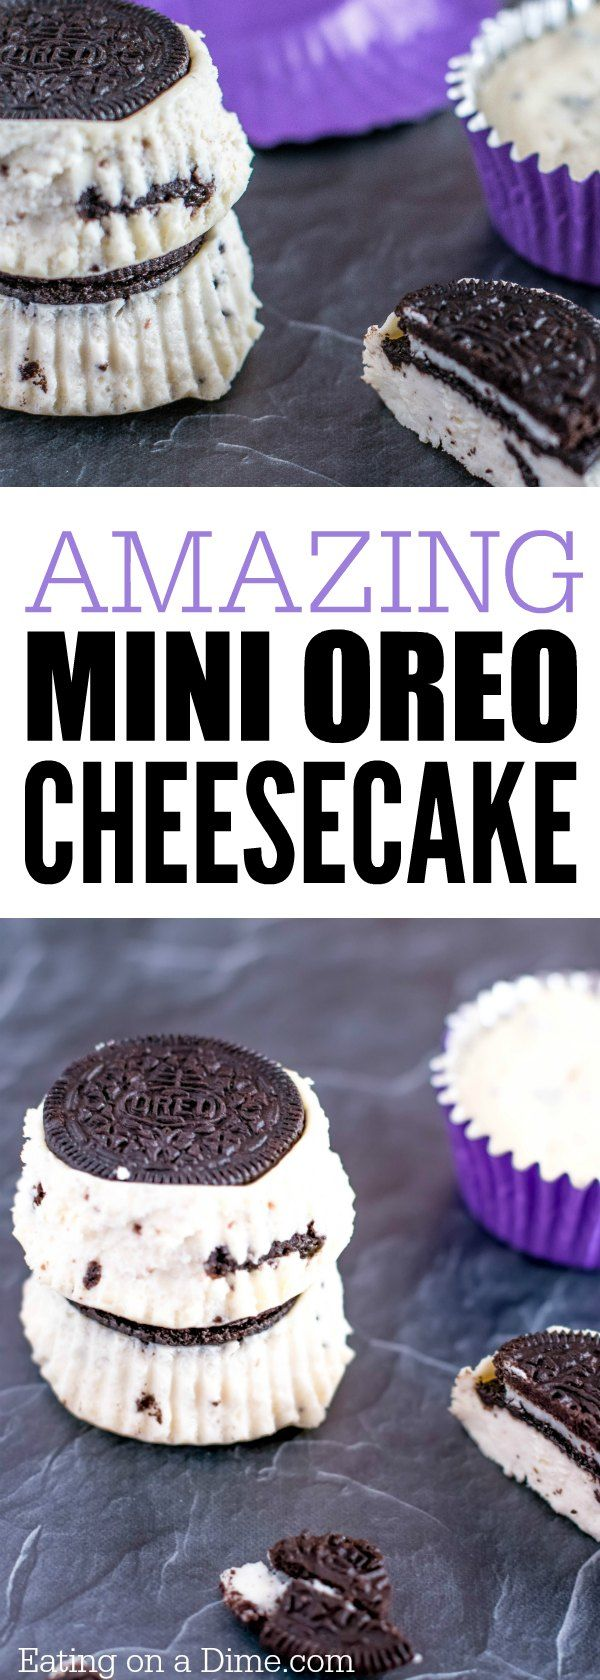 Easy oreo cookie cheesecake recipe